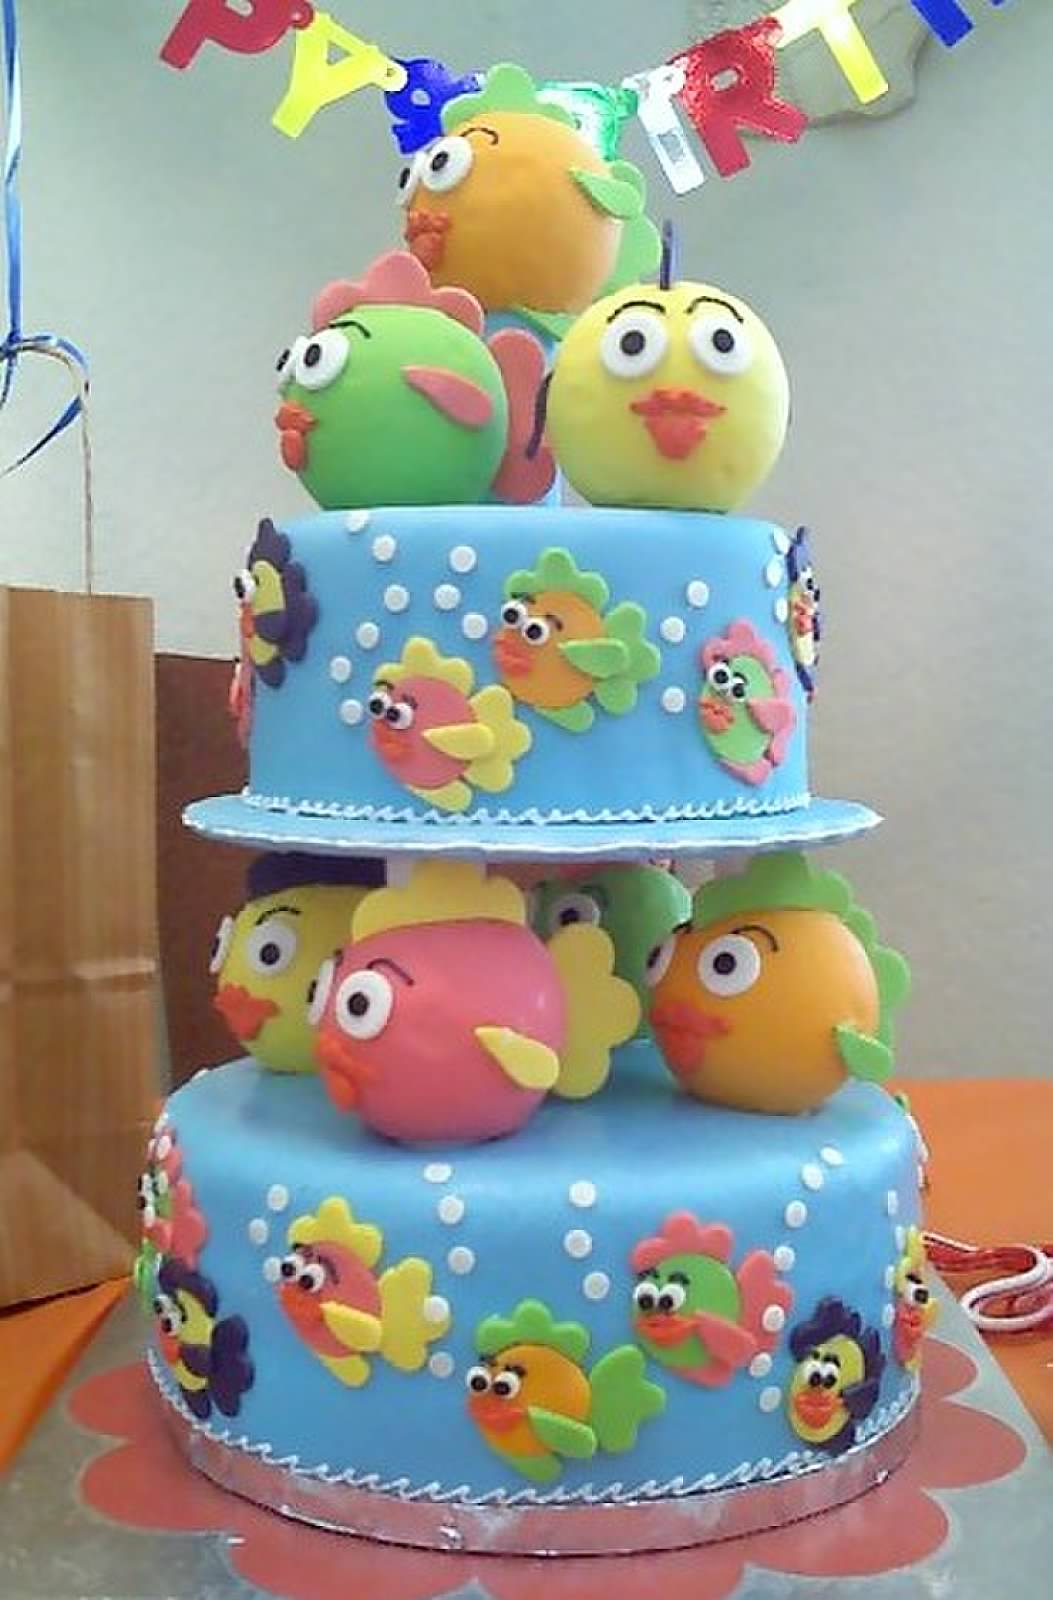 File:Birthday cake for one-year old.jpg - Wikipedia